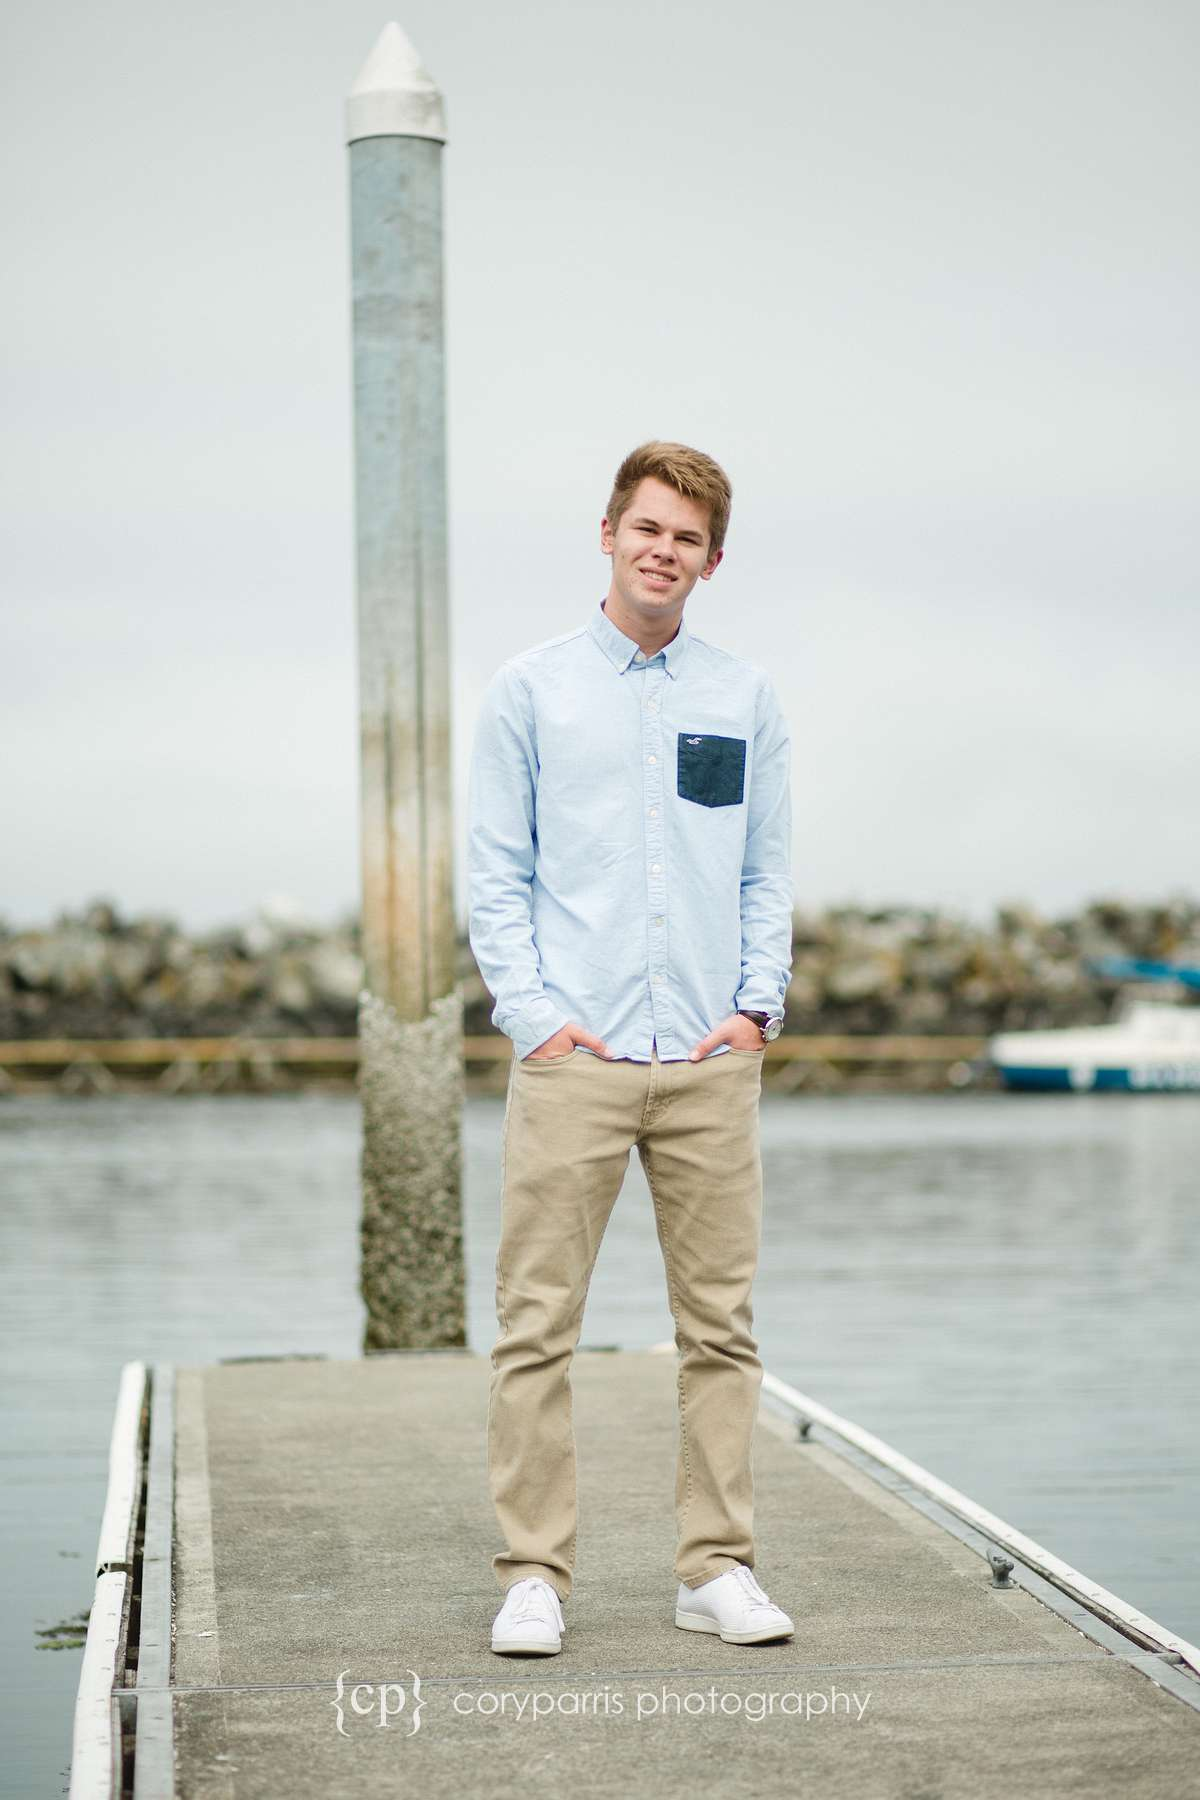 071-edmonds-beach-senior-portraits.jpg